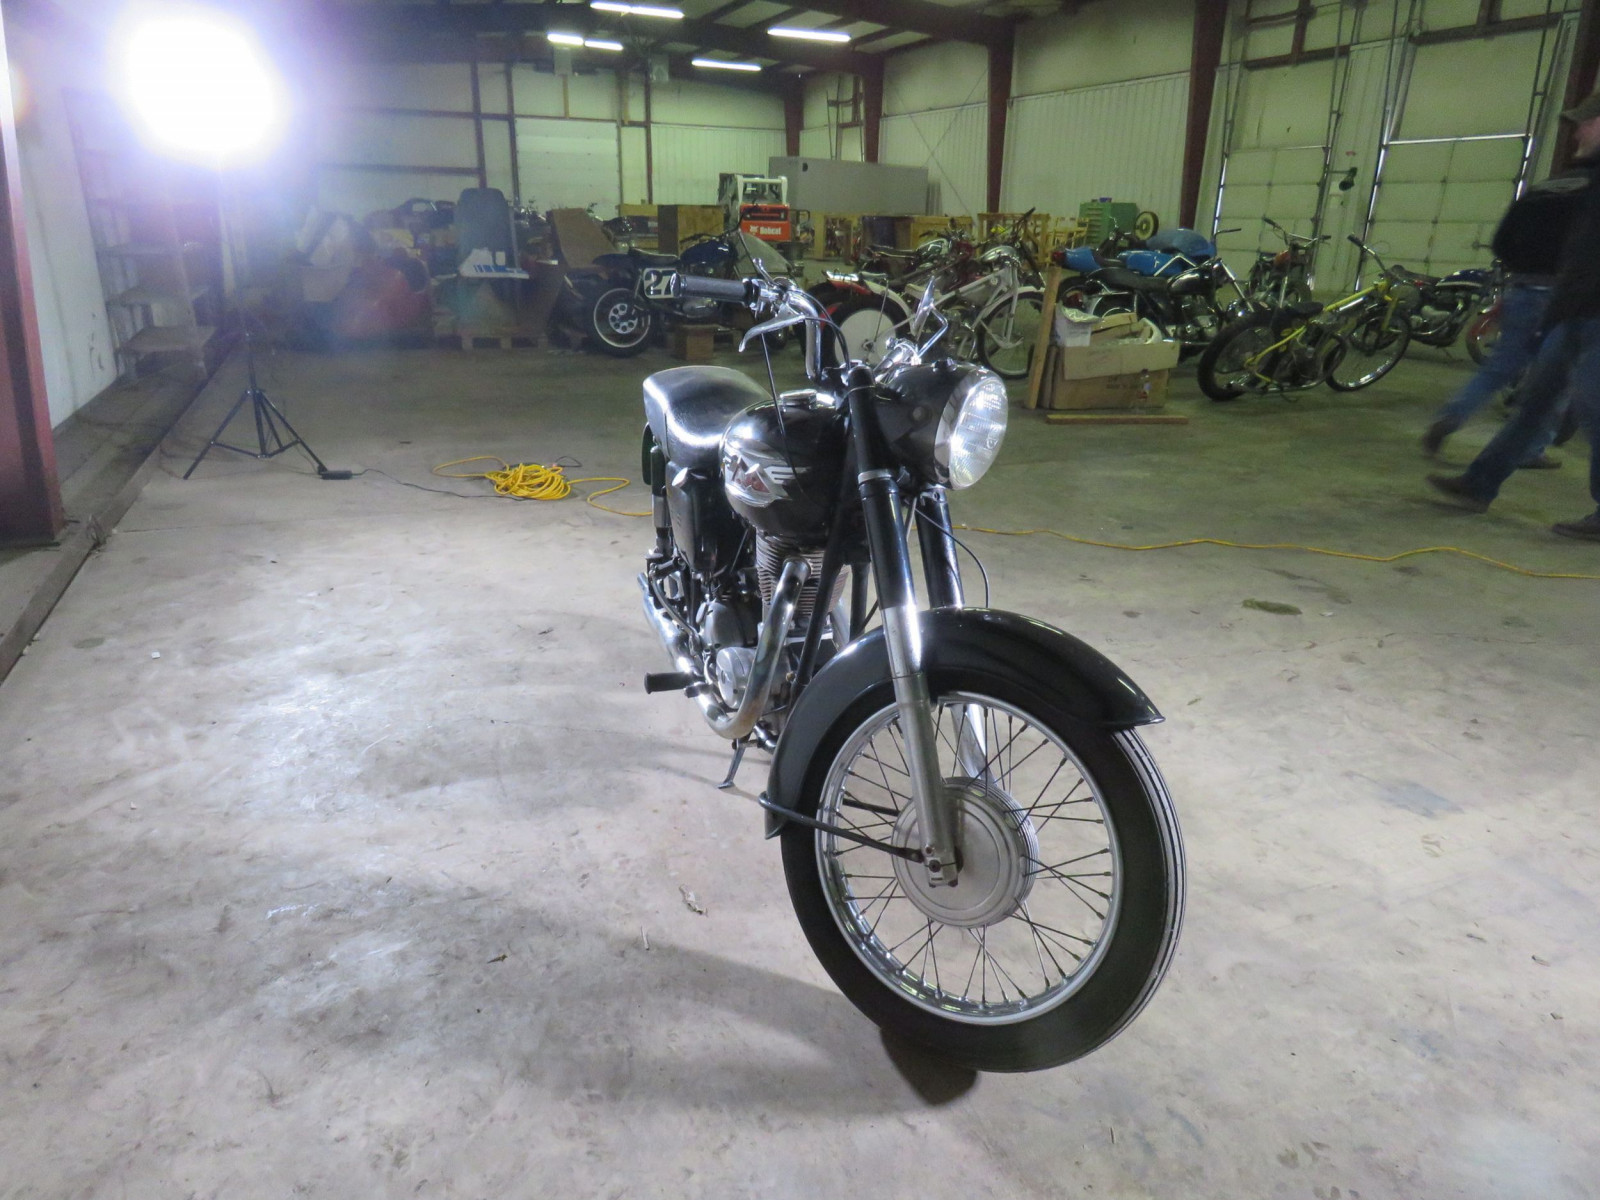 1950 Matchless G80 Motorcycle - Image 2